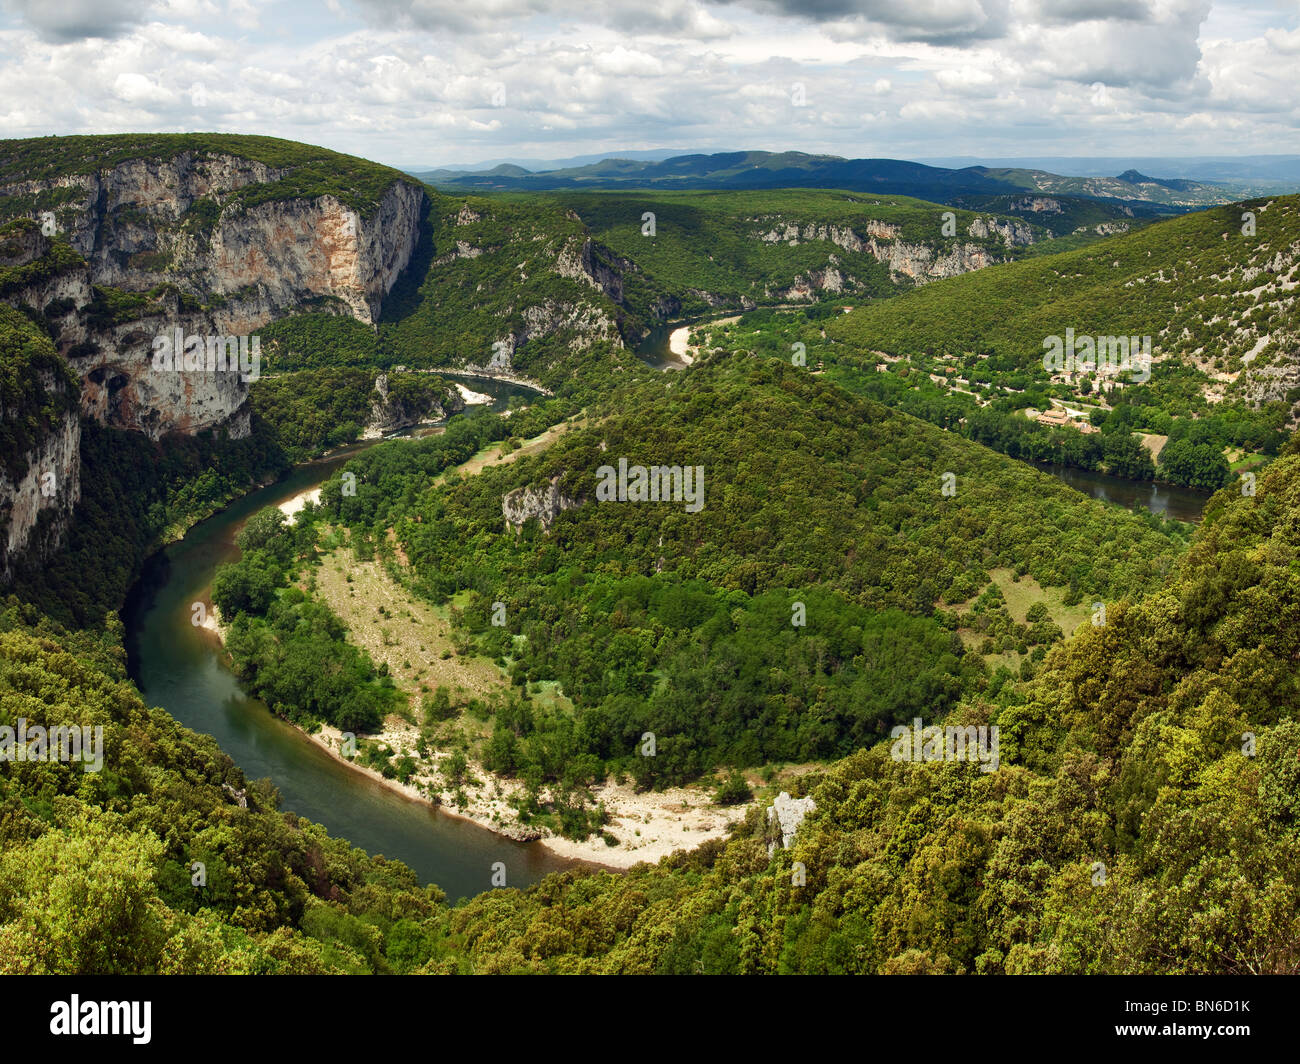 bends of the Ardeche river in it's canyon - Stock Image